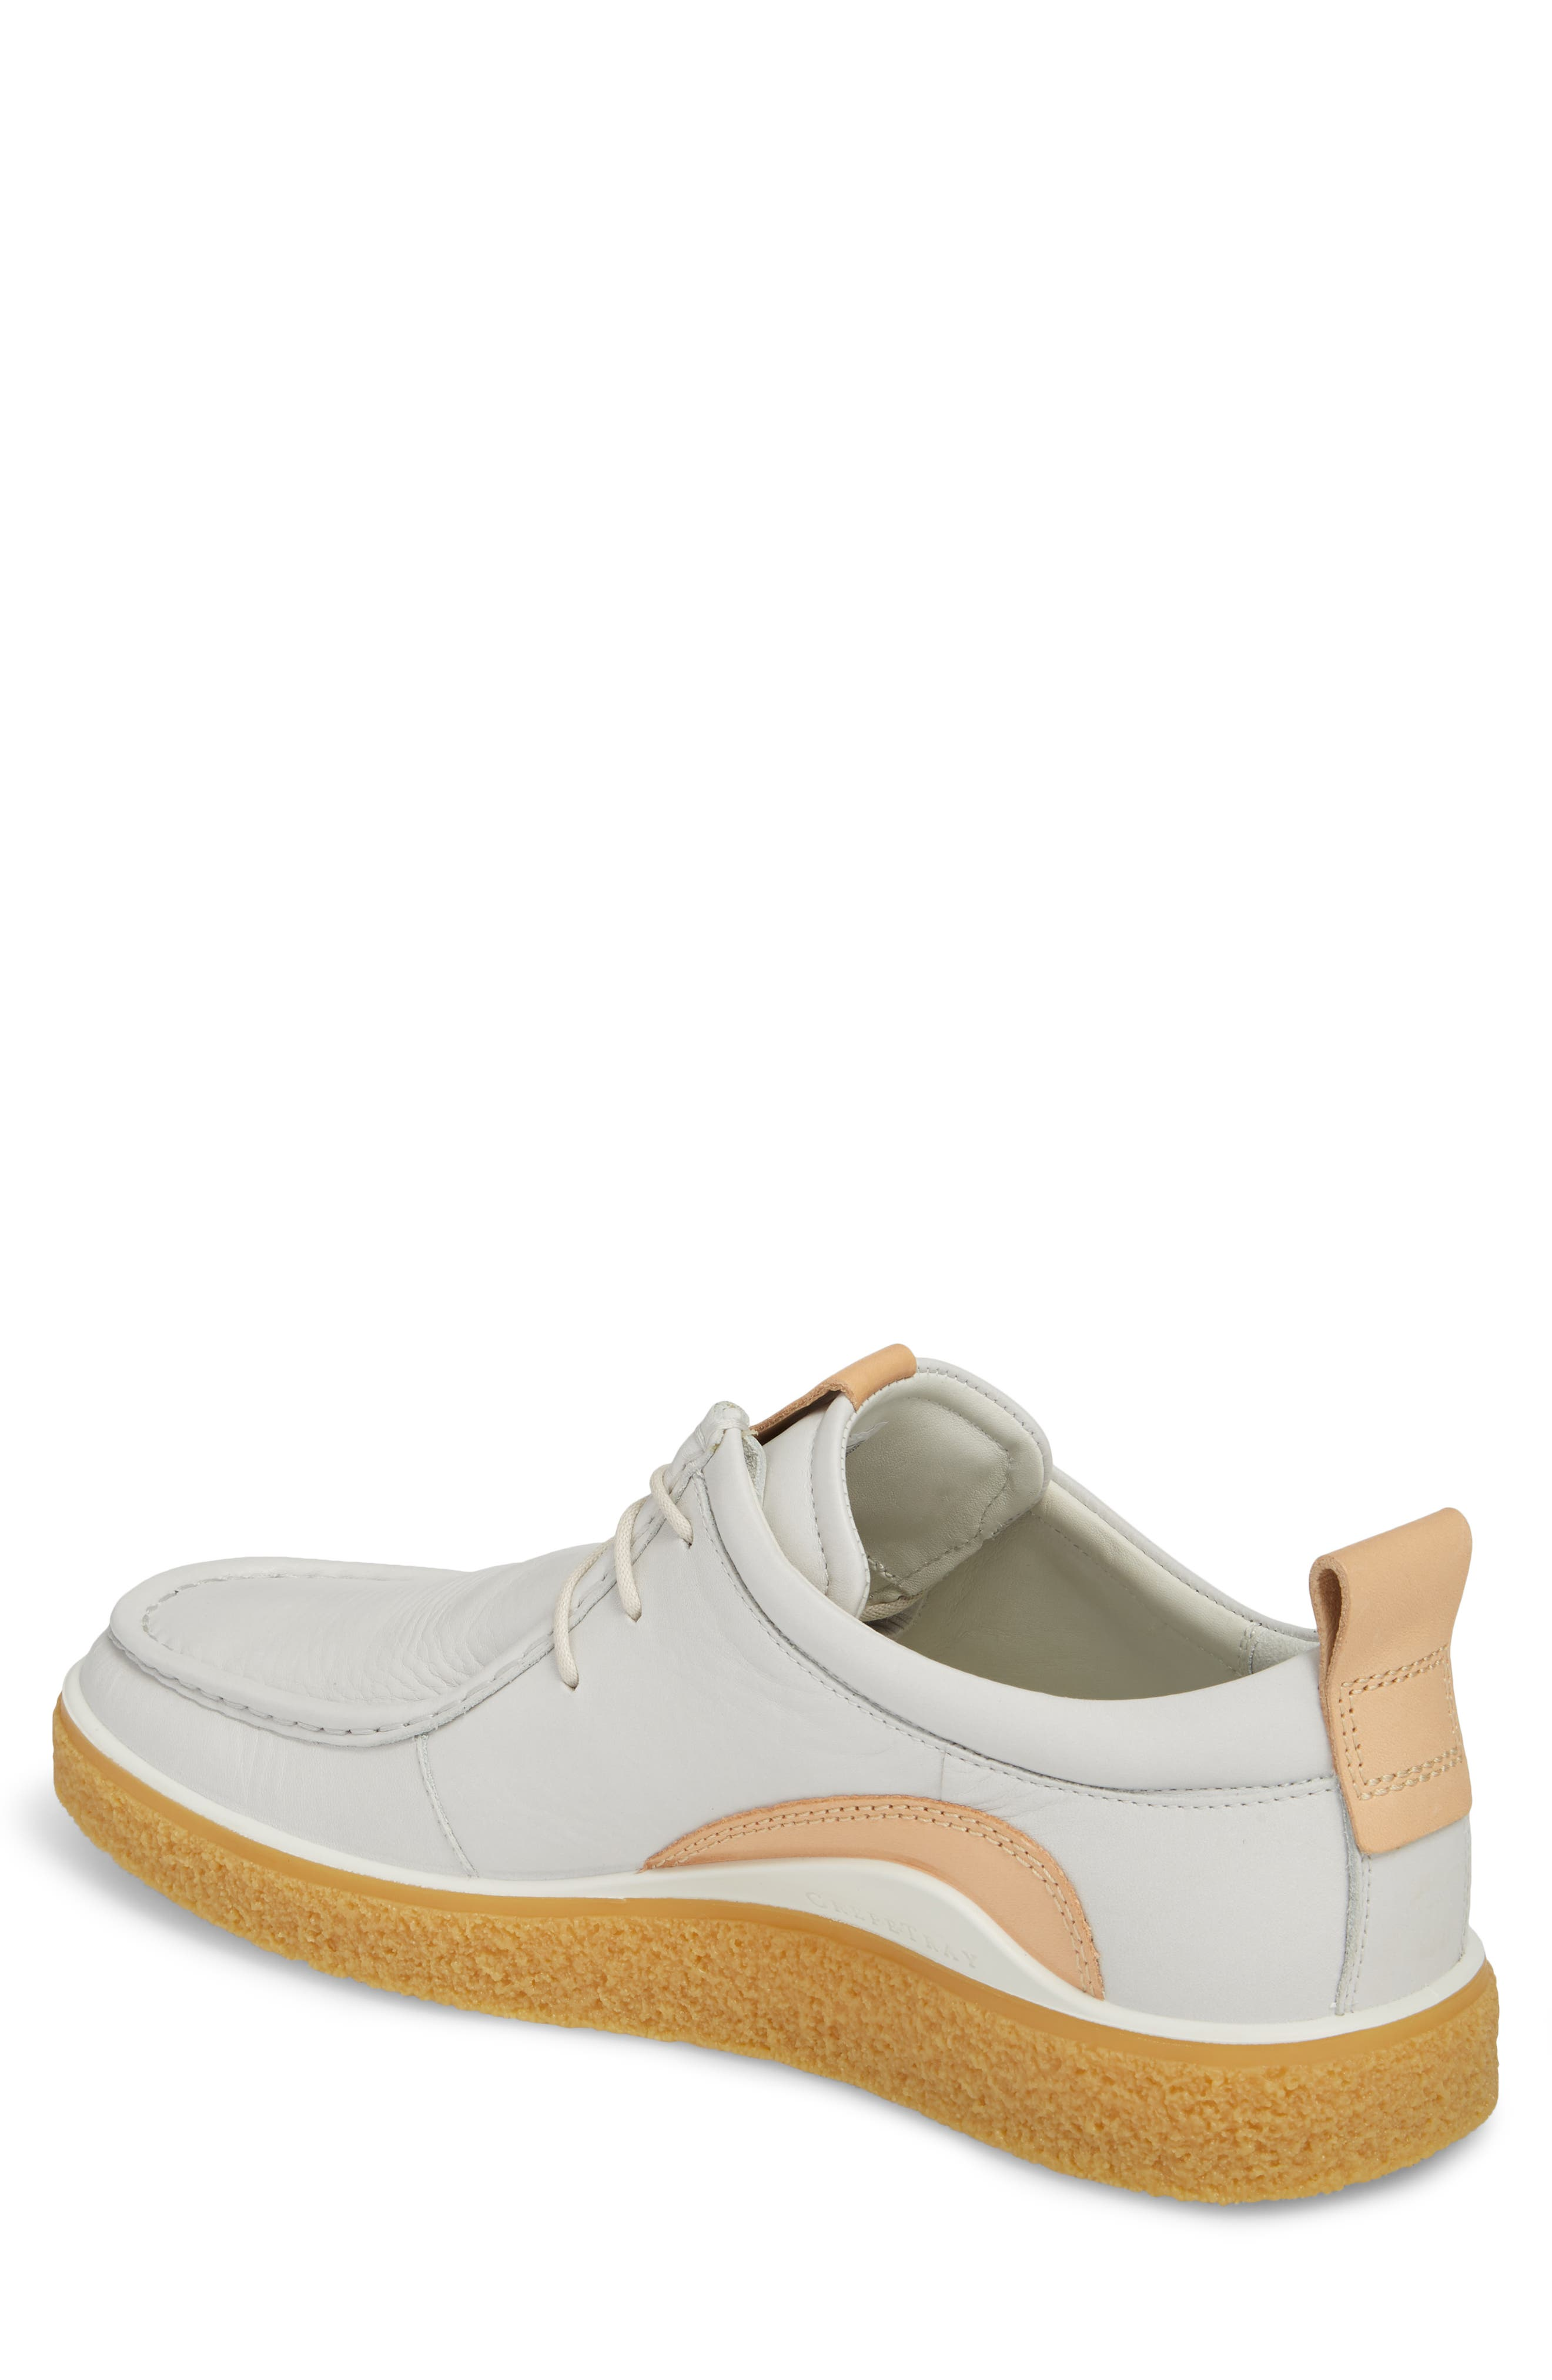 Crepetray Moc Toe Low Chukka Boot,                             Alternate thumbnail 2, color,                             Off White Leather